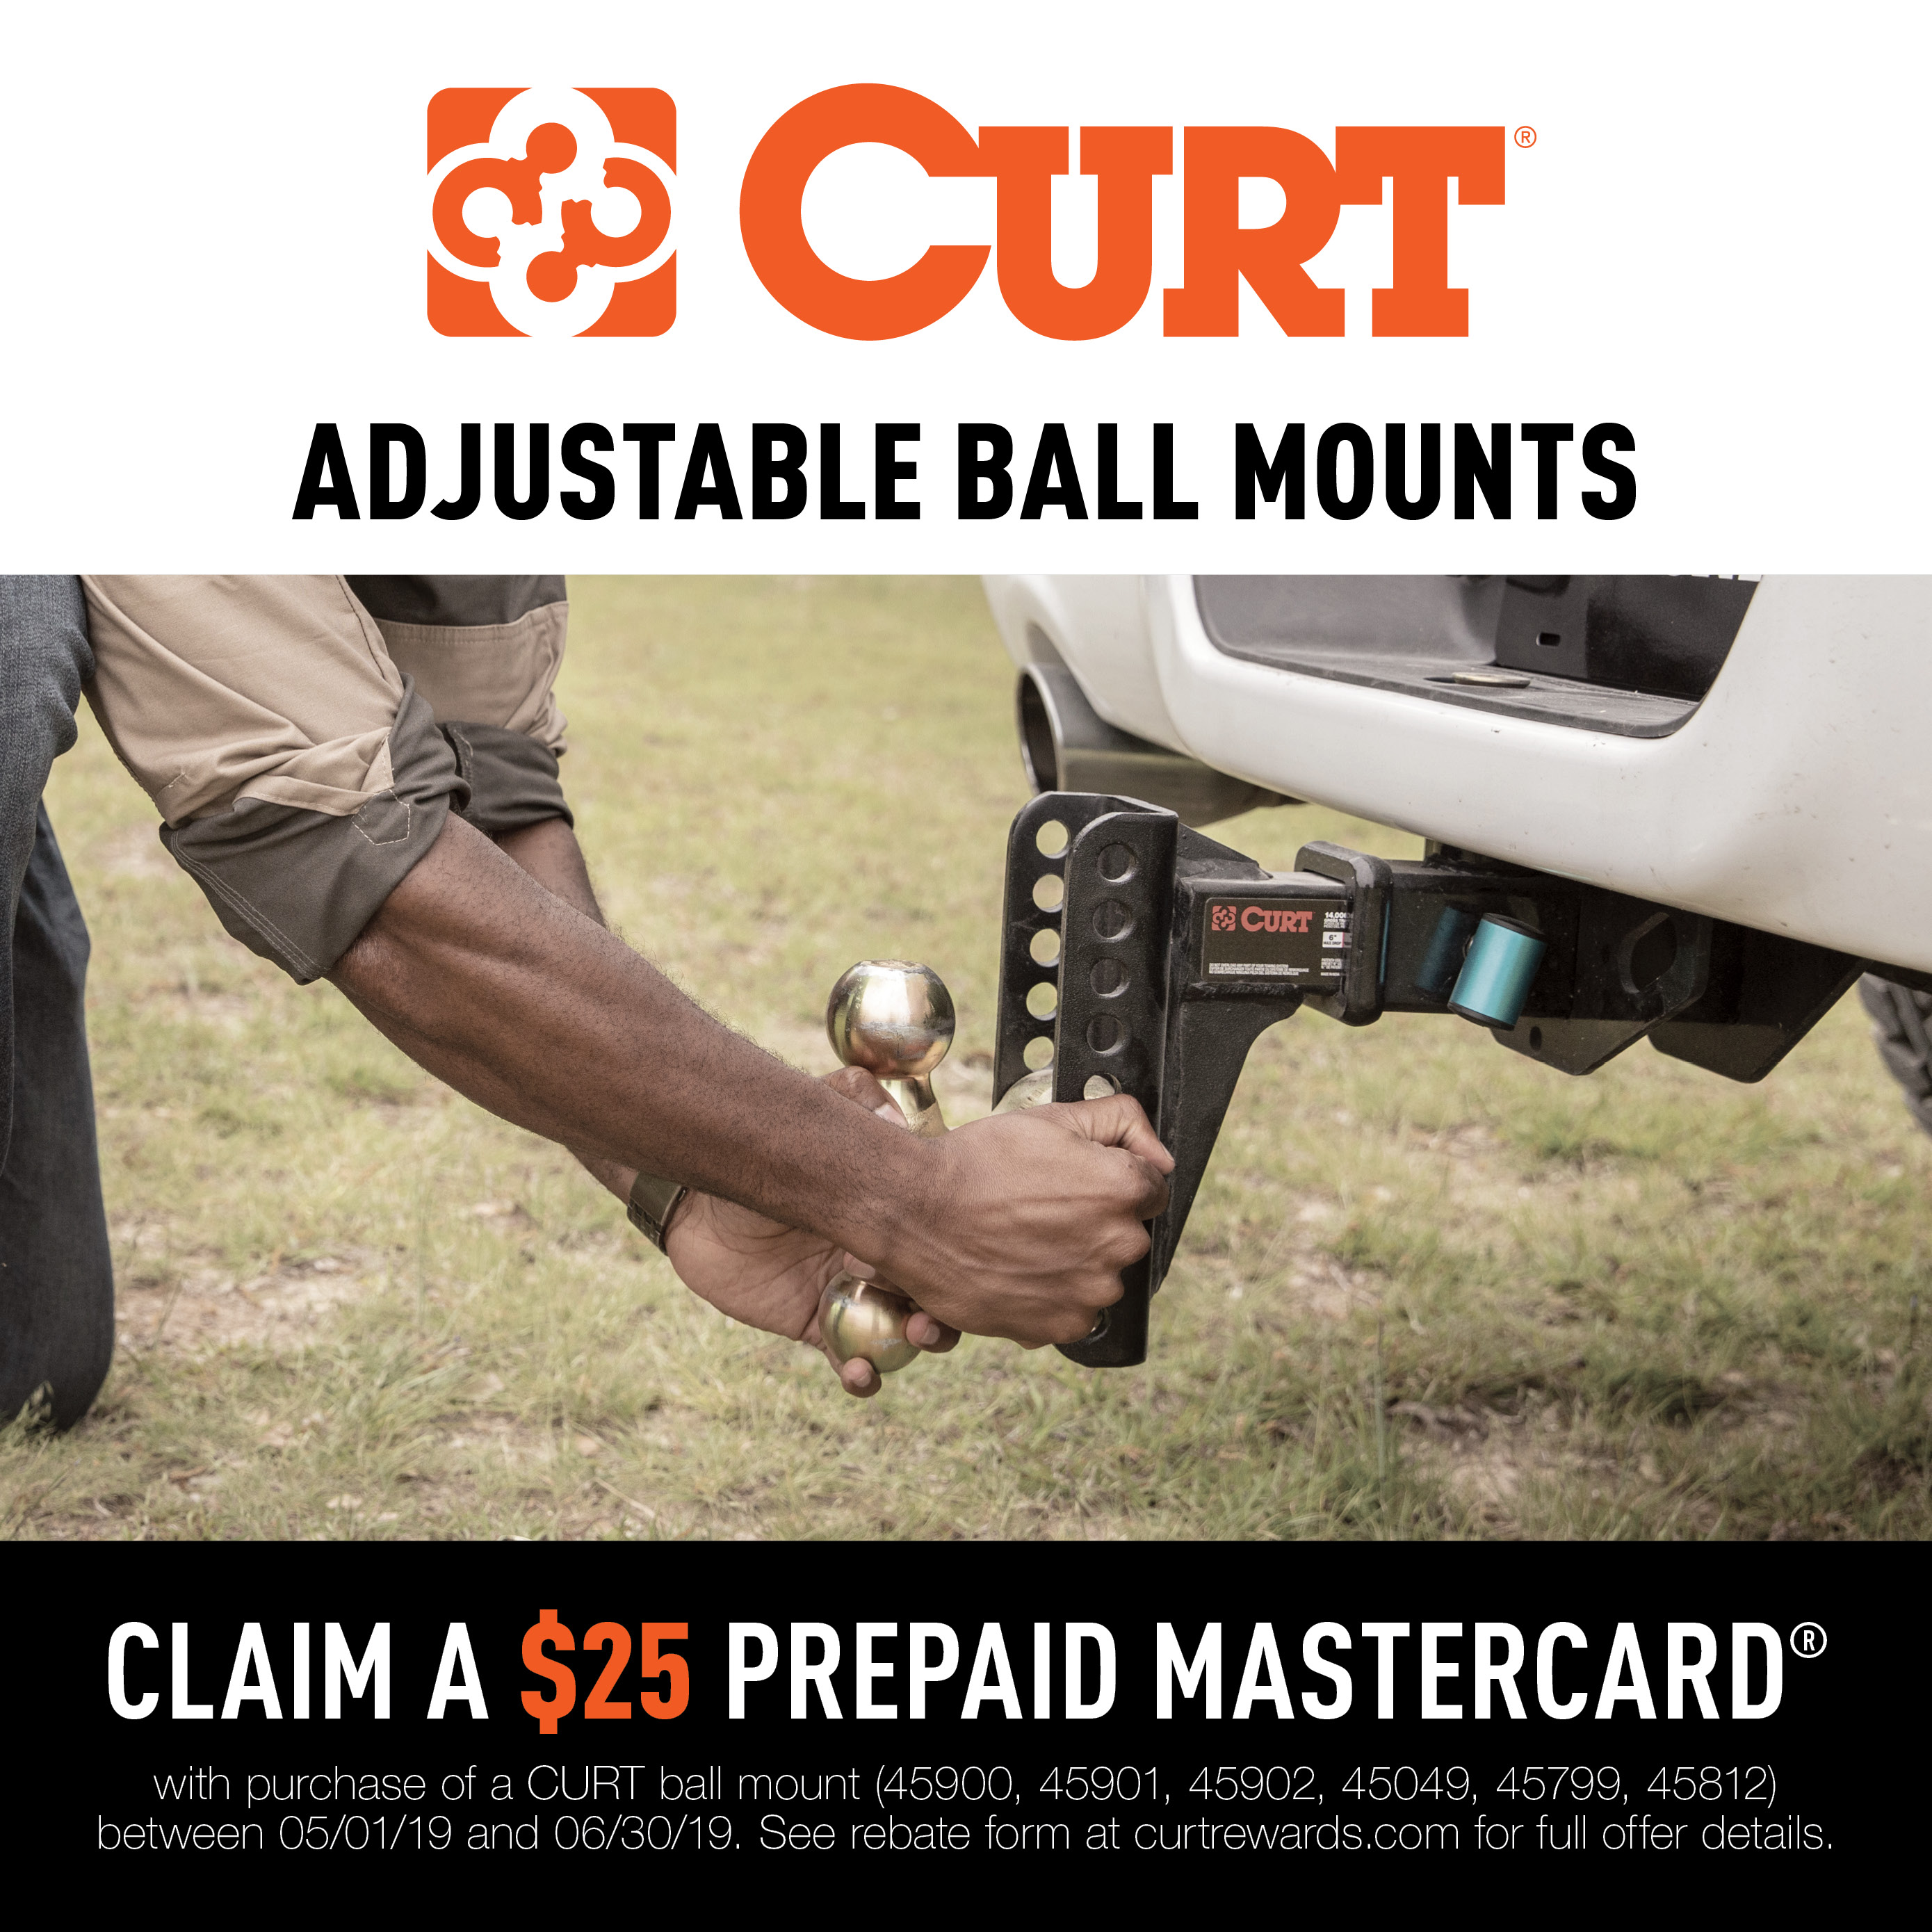 CURT Adjustable Trailer Hitch Ball Mounts Promotion 2019